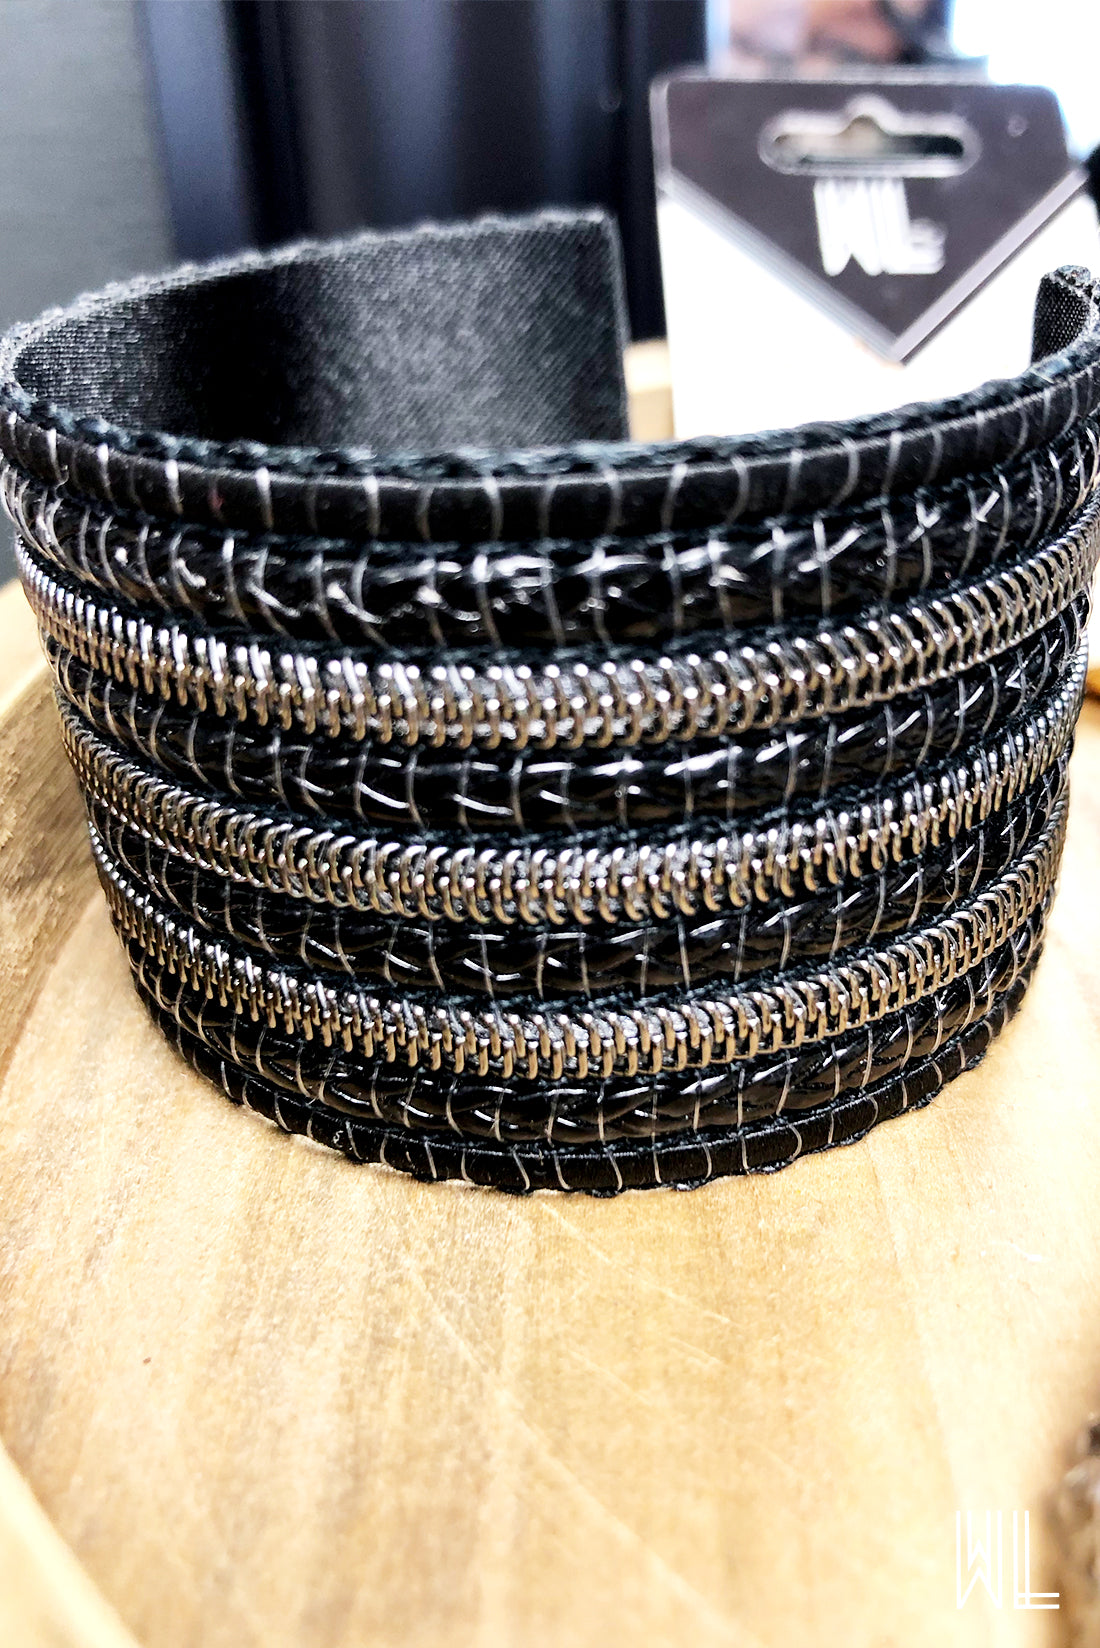 Wide Black Braid + Silver Zipper Cuff Bracelet